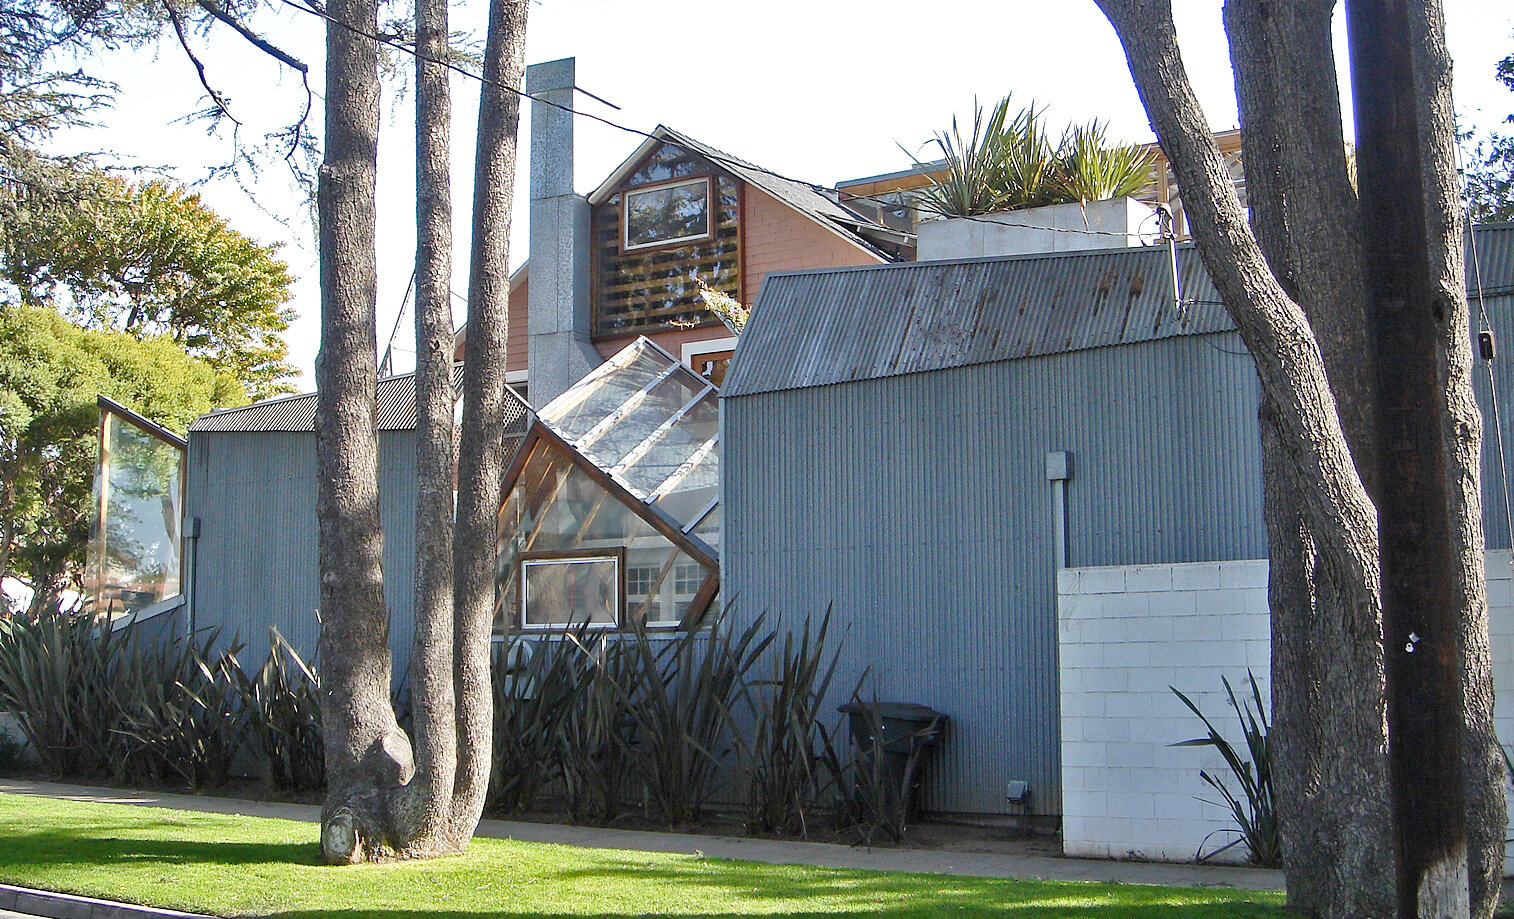 Gehry-designed first house in Santa Monica | Frank Gehry | STIRworld